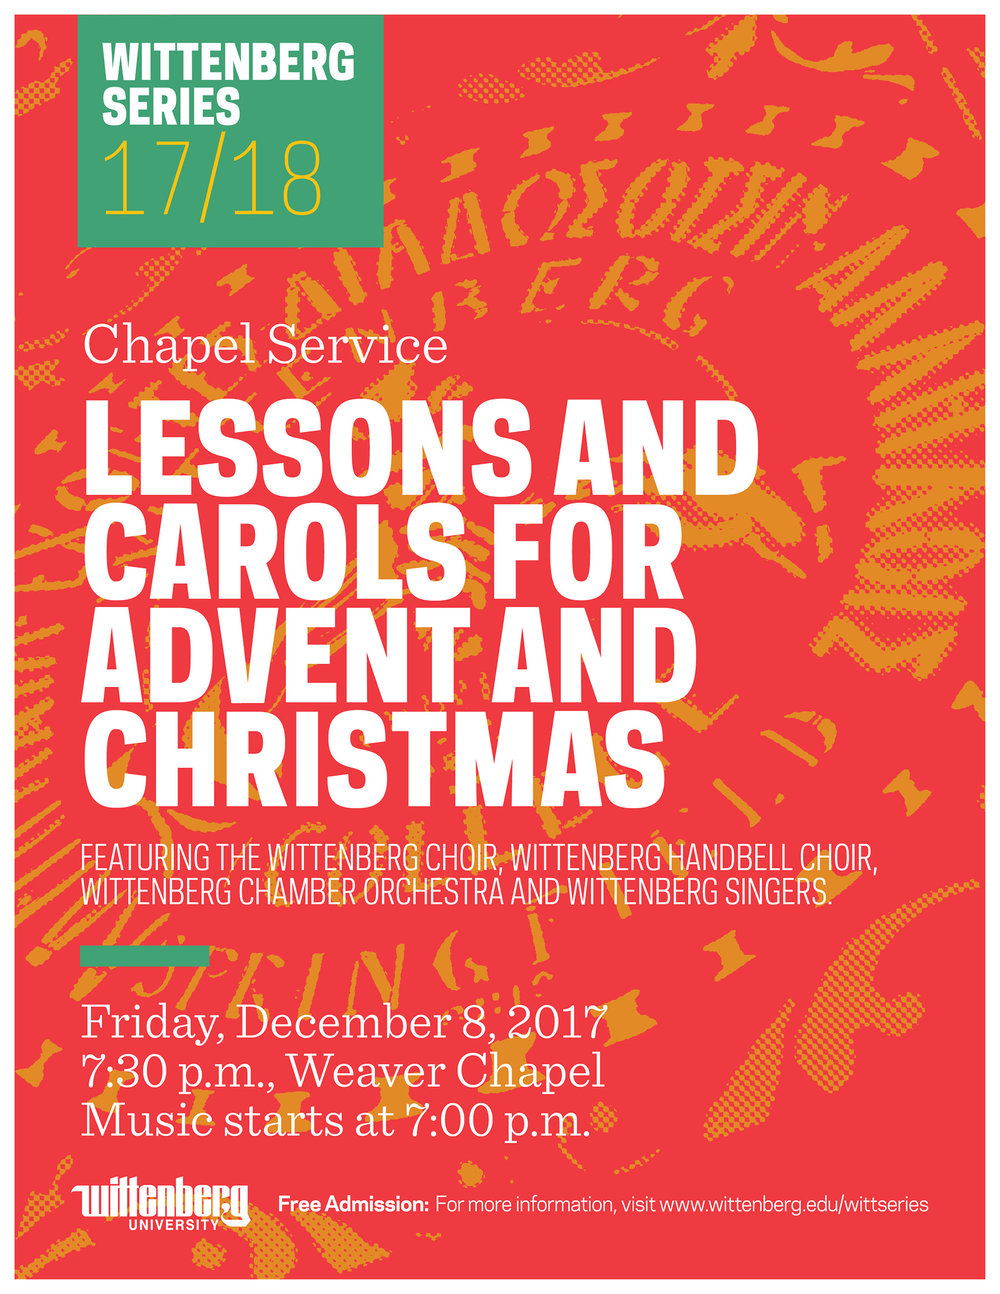 WITT SERIES LESSONS AND CAROLS FLYER.jpg